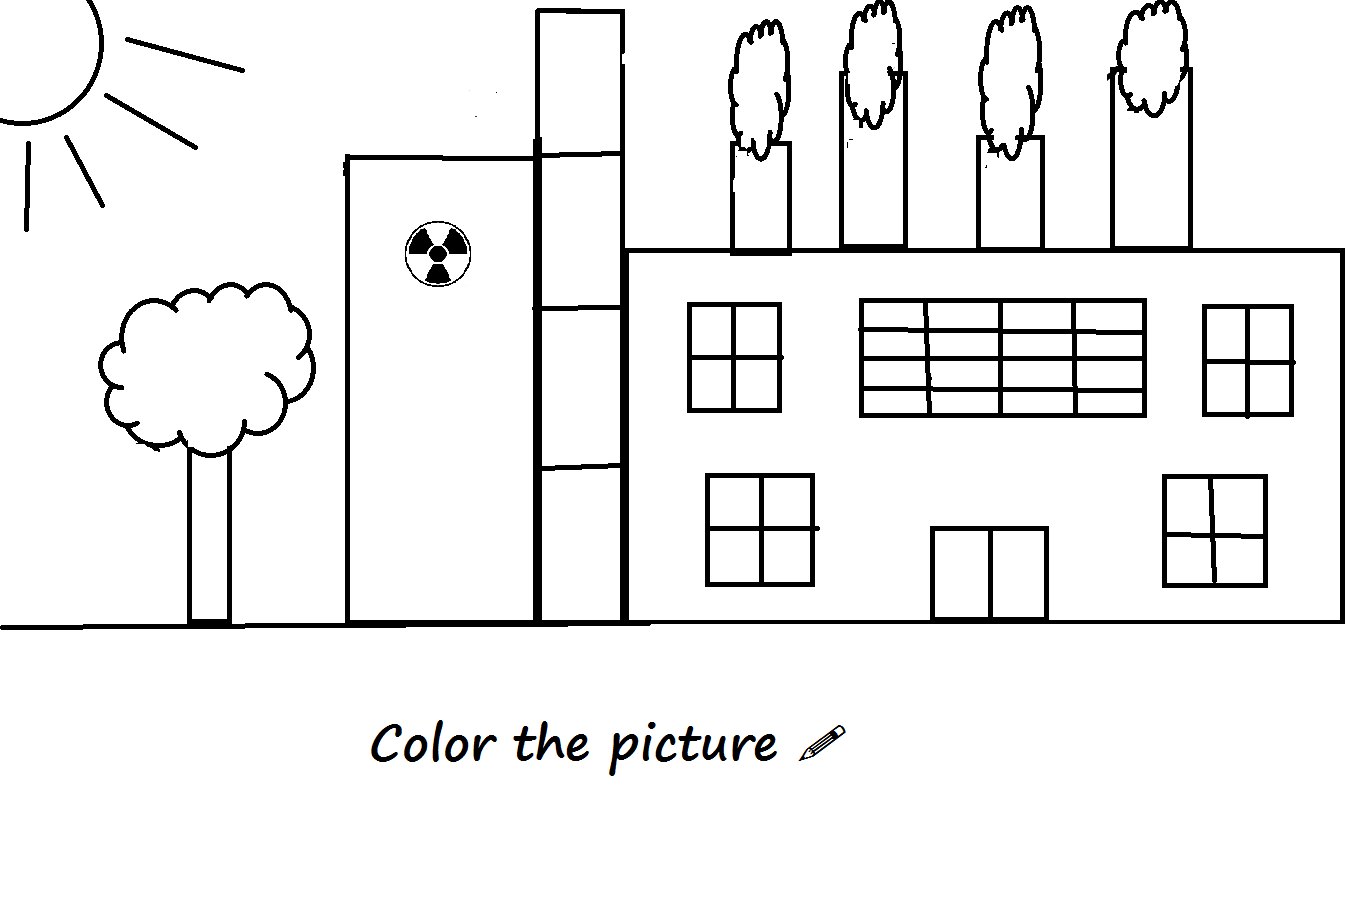 Devoted to the earth air pollution coloring page factory for Air pollution coloring pages